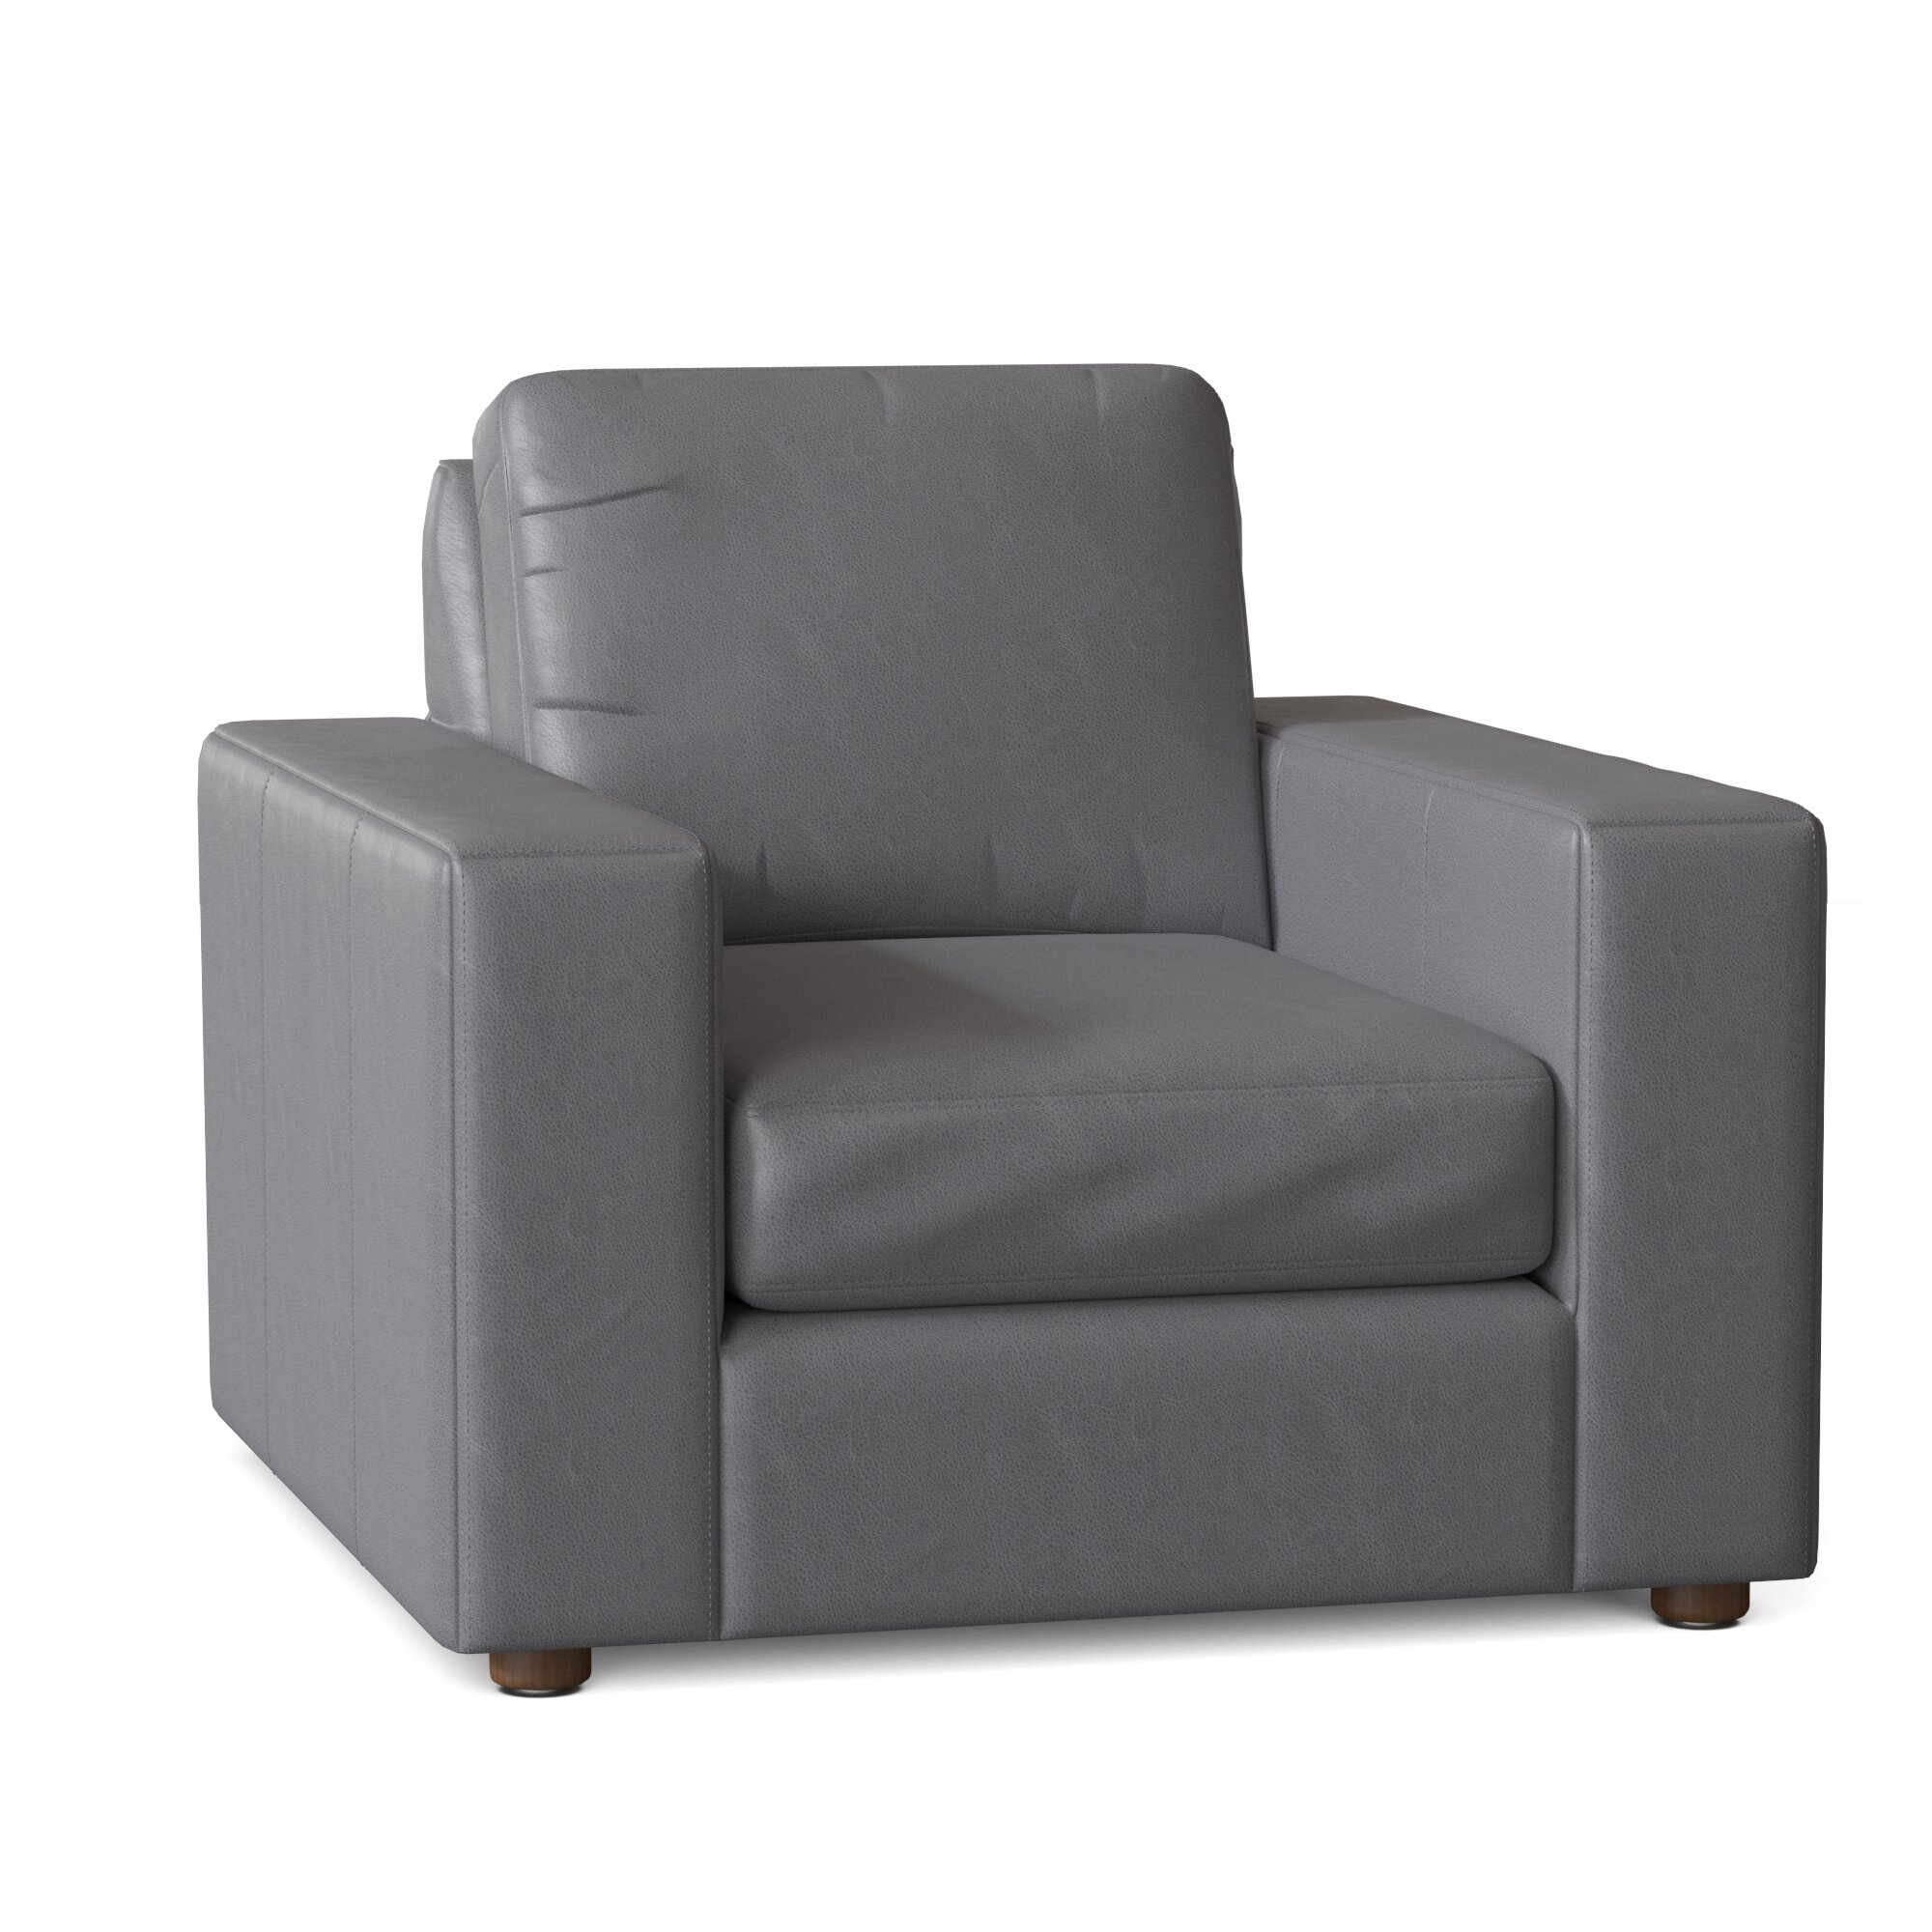 Fairhaven Armchair With Leppert Armchairs (View 13 of 15)